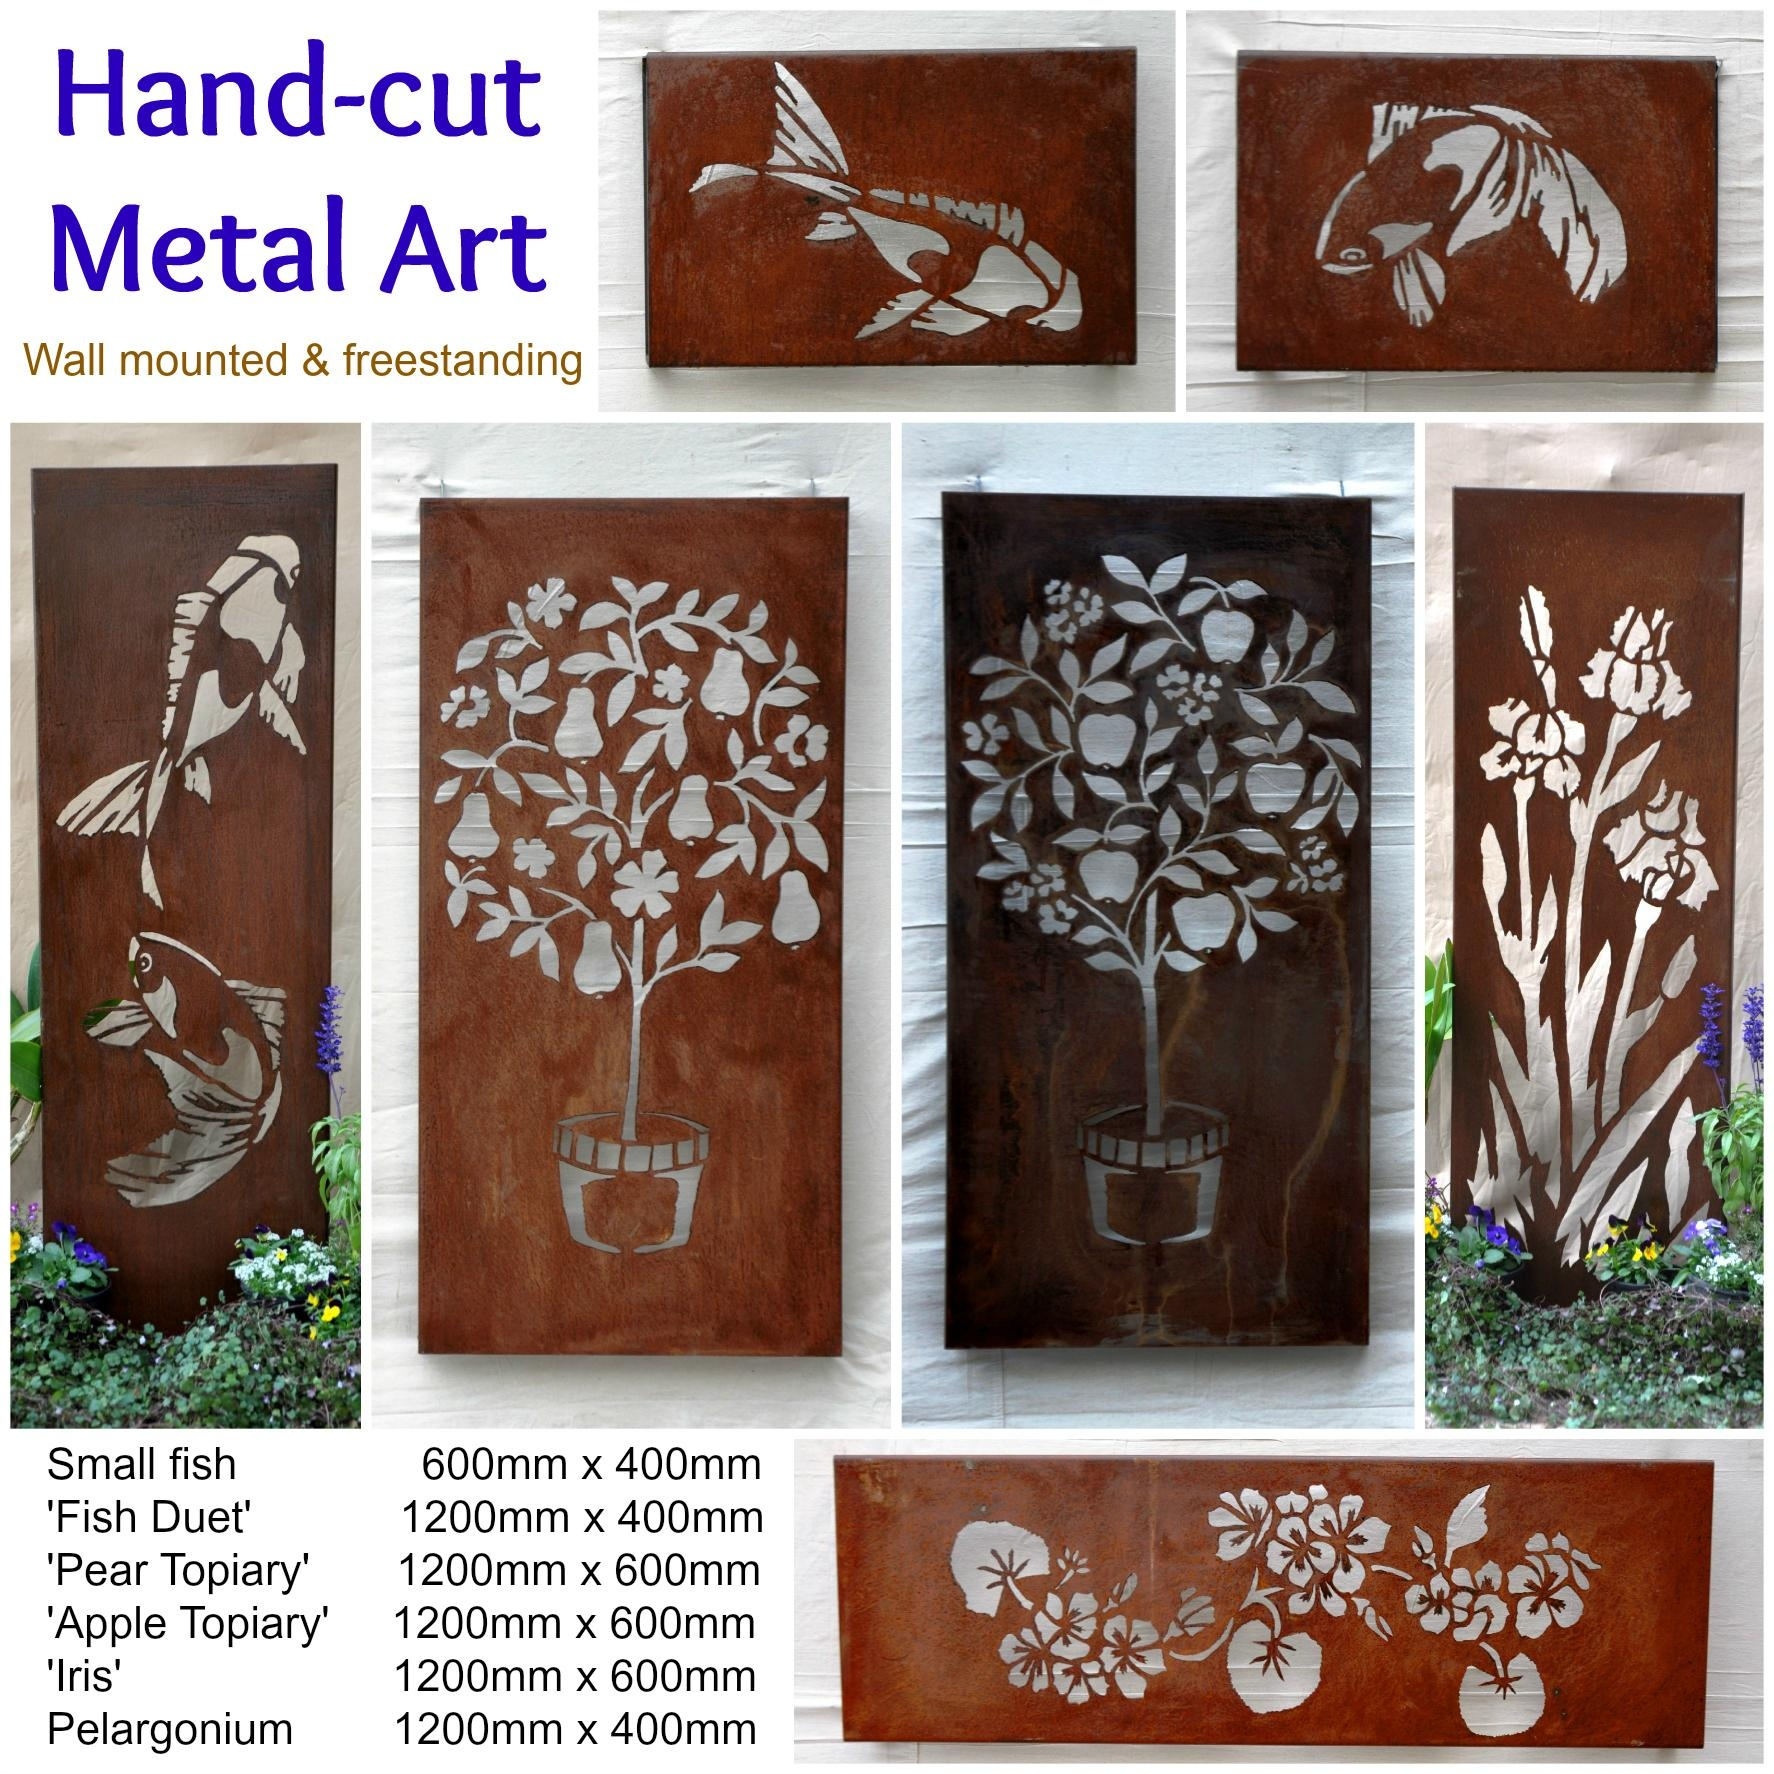 Wall Art Decor: Unique Metal Australian Wall Art Free Standing With Commercial Wall Art (Image 18 of 20)